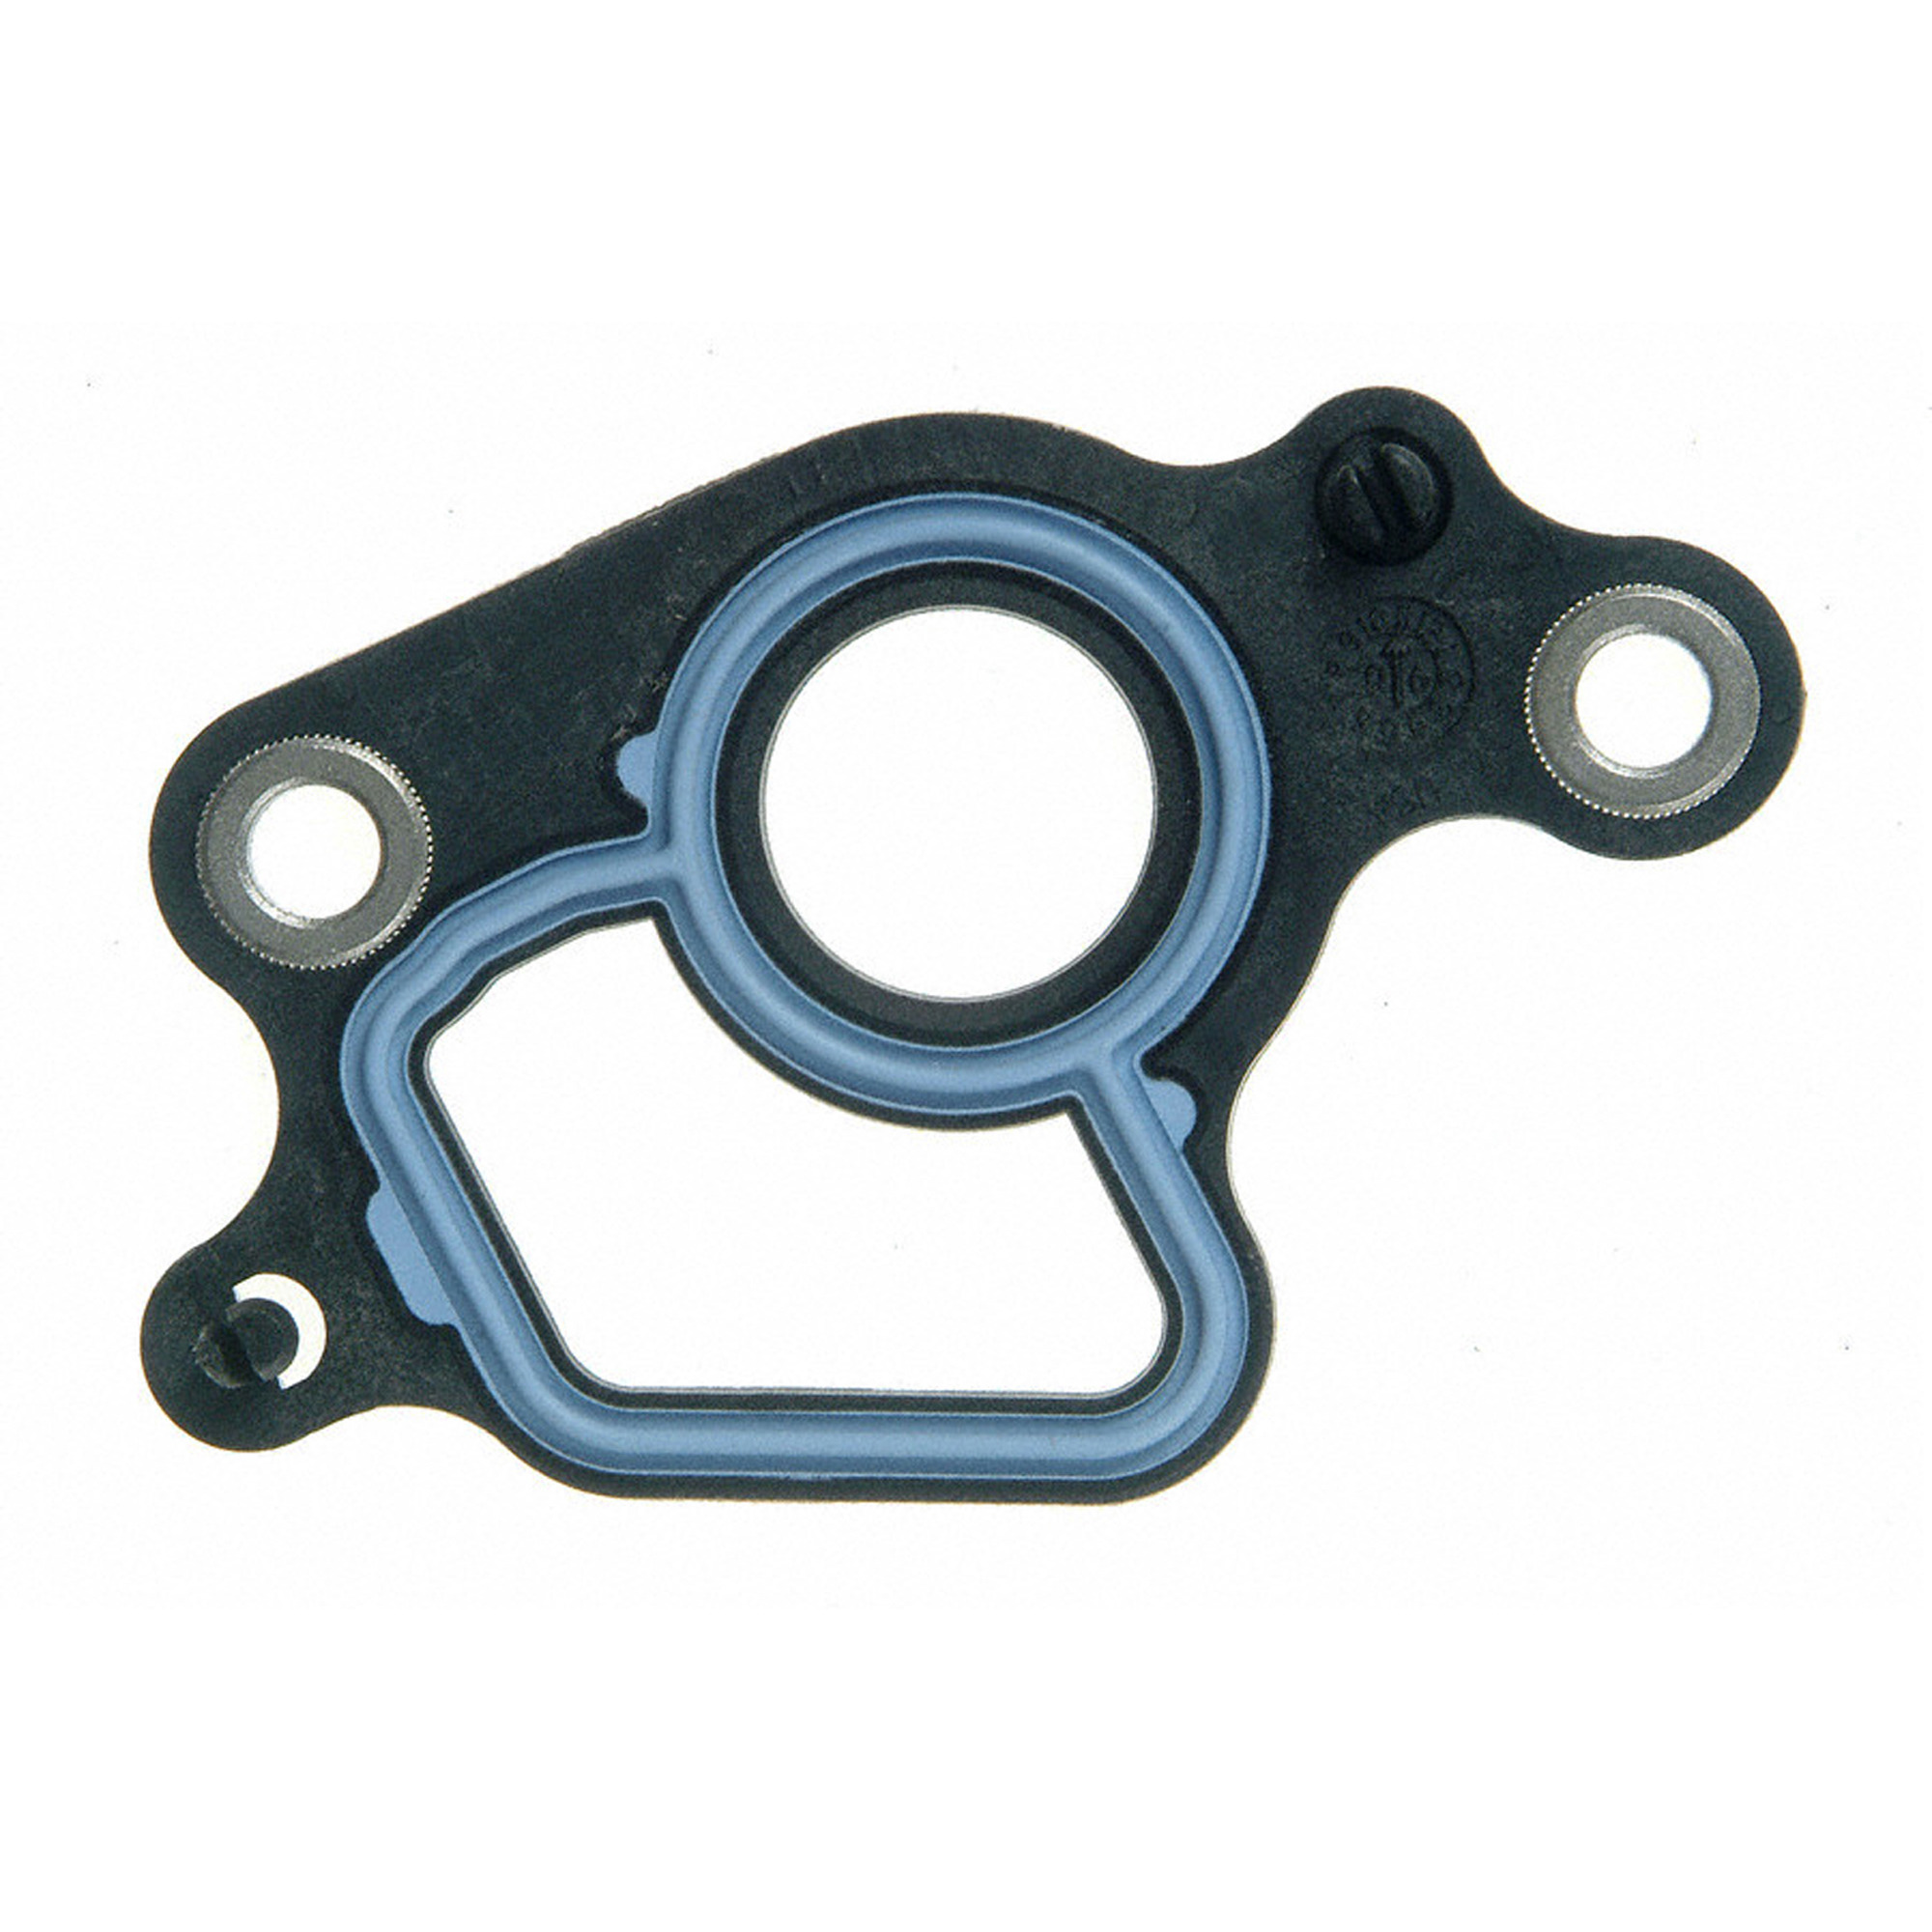 Engine Coolant Crossover Pipe Gasket